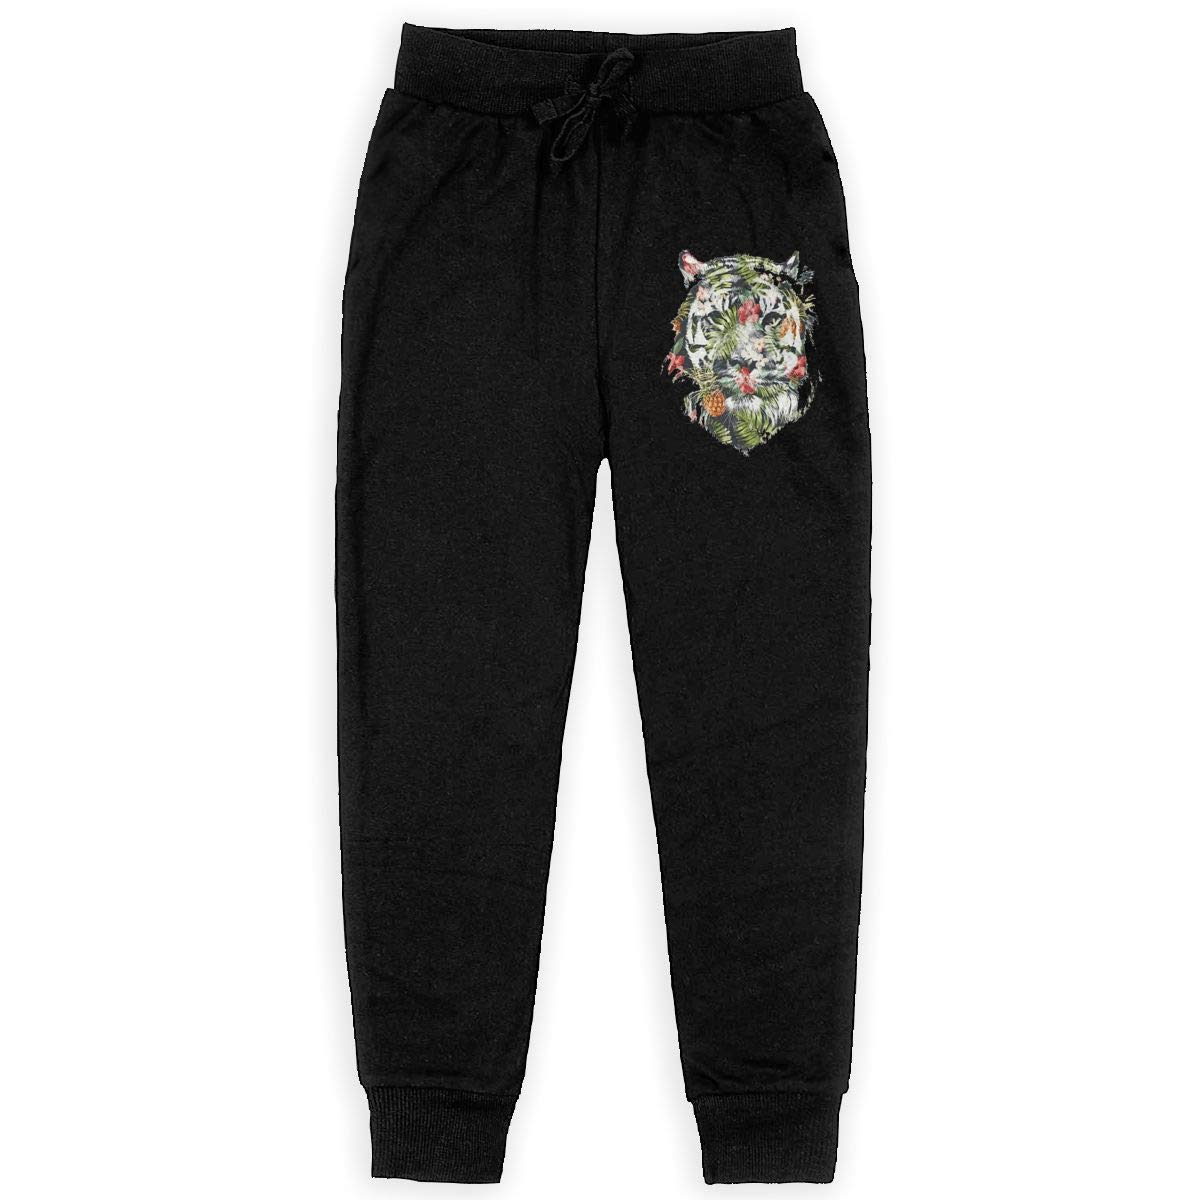 Tiger Boys Athletic Smart Fleece Pant Youth Soft and Cozy Sweatpants